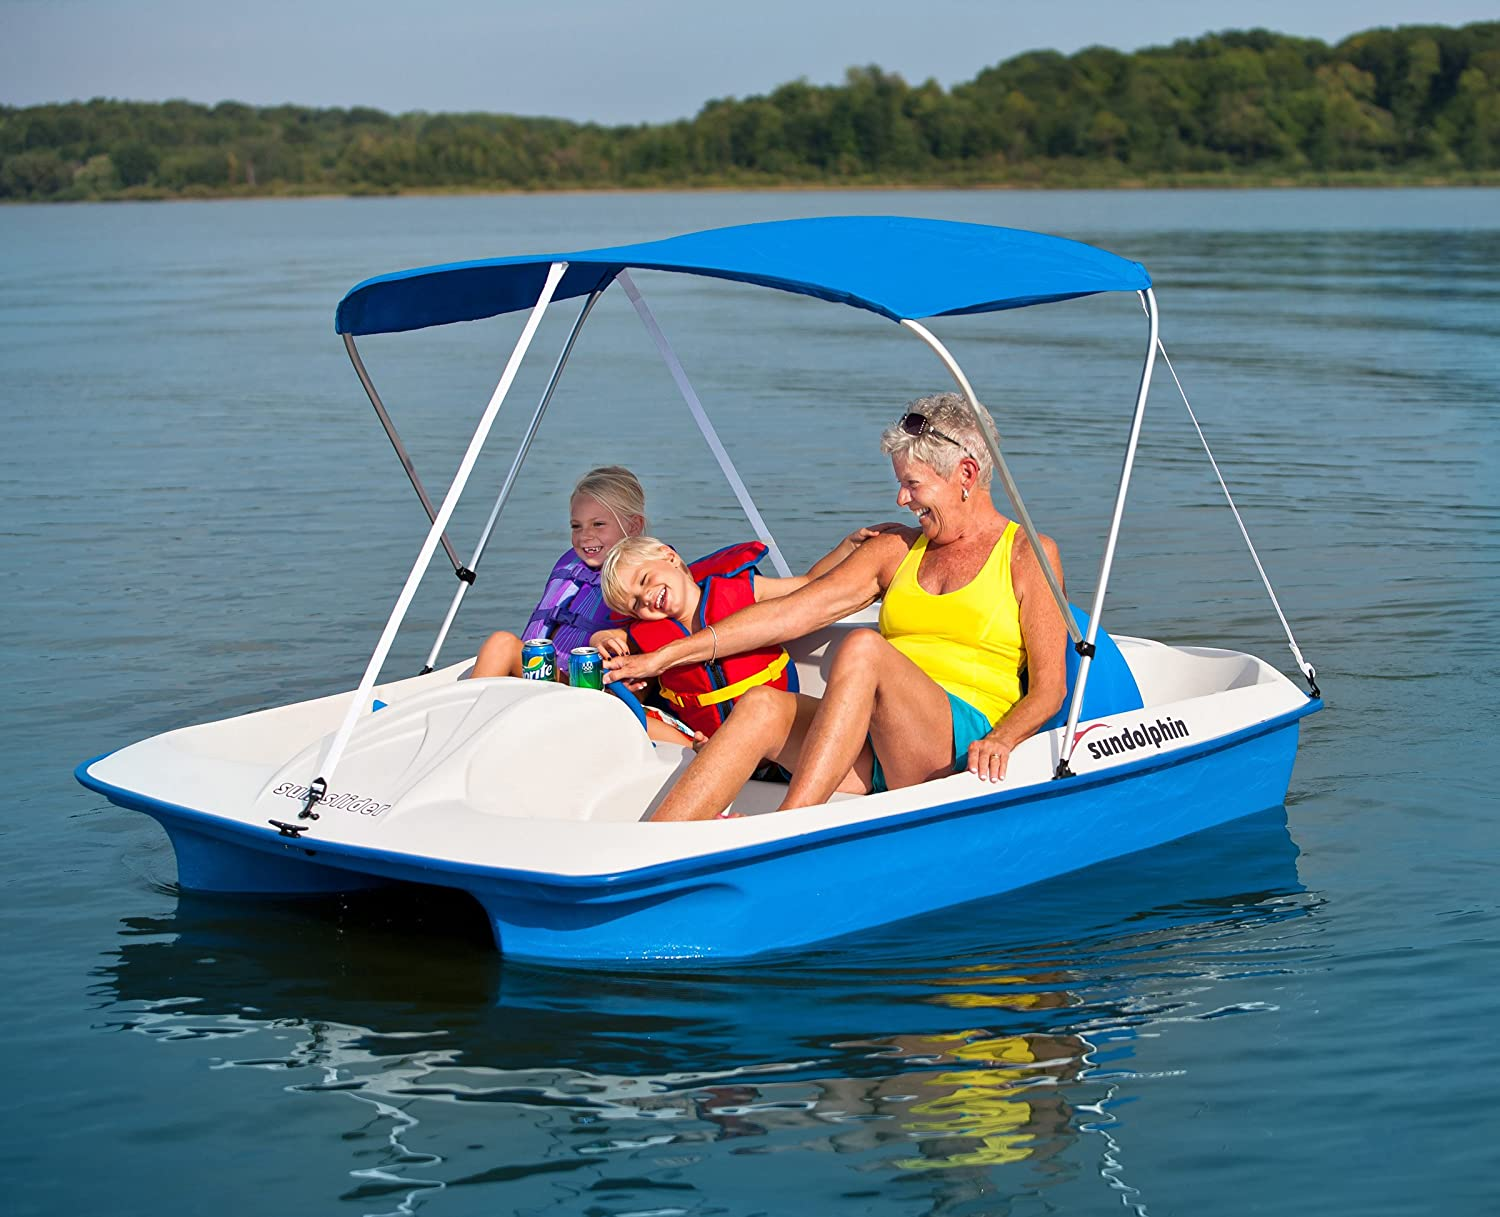 Amazon.com  Sun Dolphin Sun Slider 5 Seat Pedal Boat with Canopy (Blue)  Paddle Boat  Sports u0026 Outdoors & Amazon.com : Sun Dolphin Sun Slider 5 Seat Pedal Boat with Canopy ...